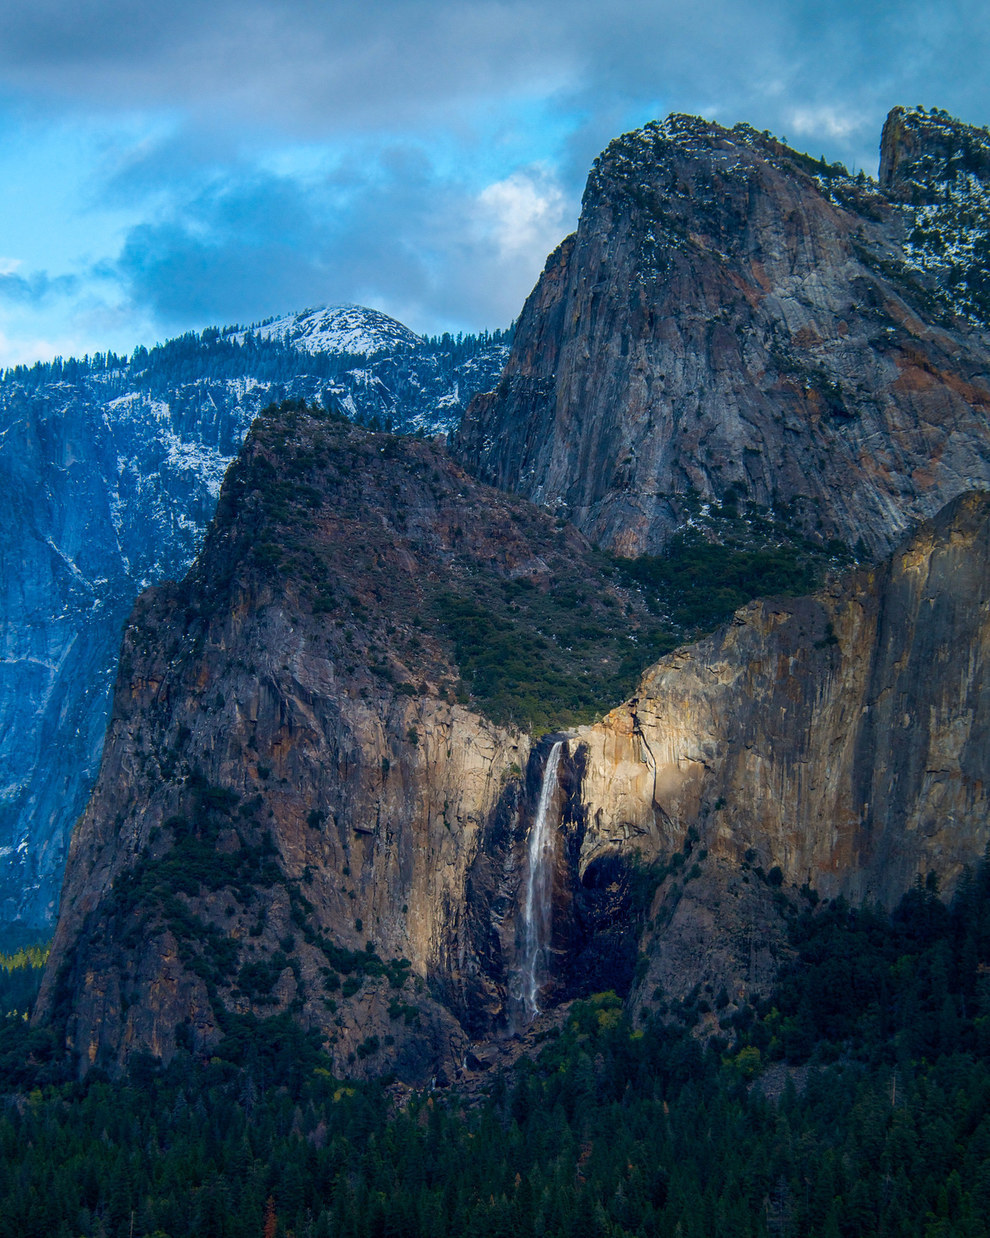 """Spotlight on Bridalveil Falls"", by Douglas Croft, from the USA"